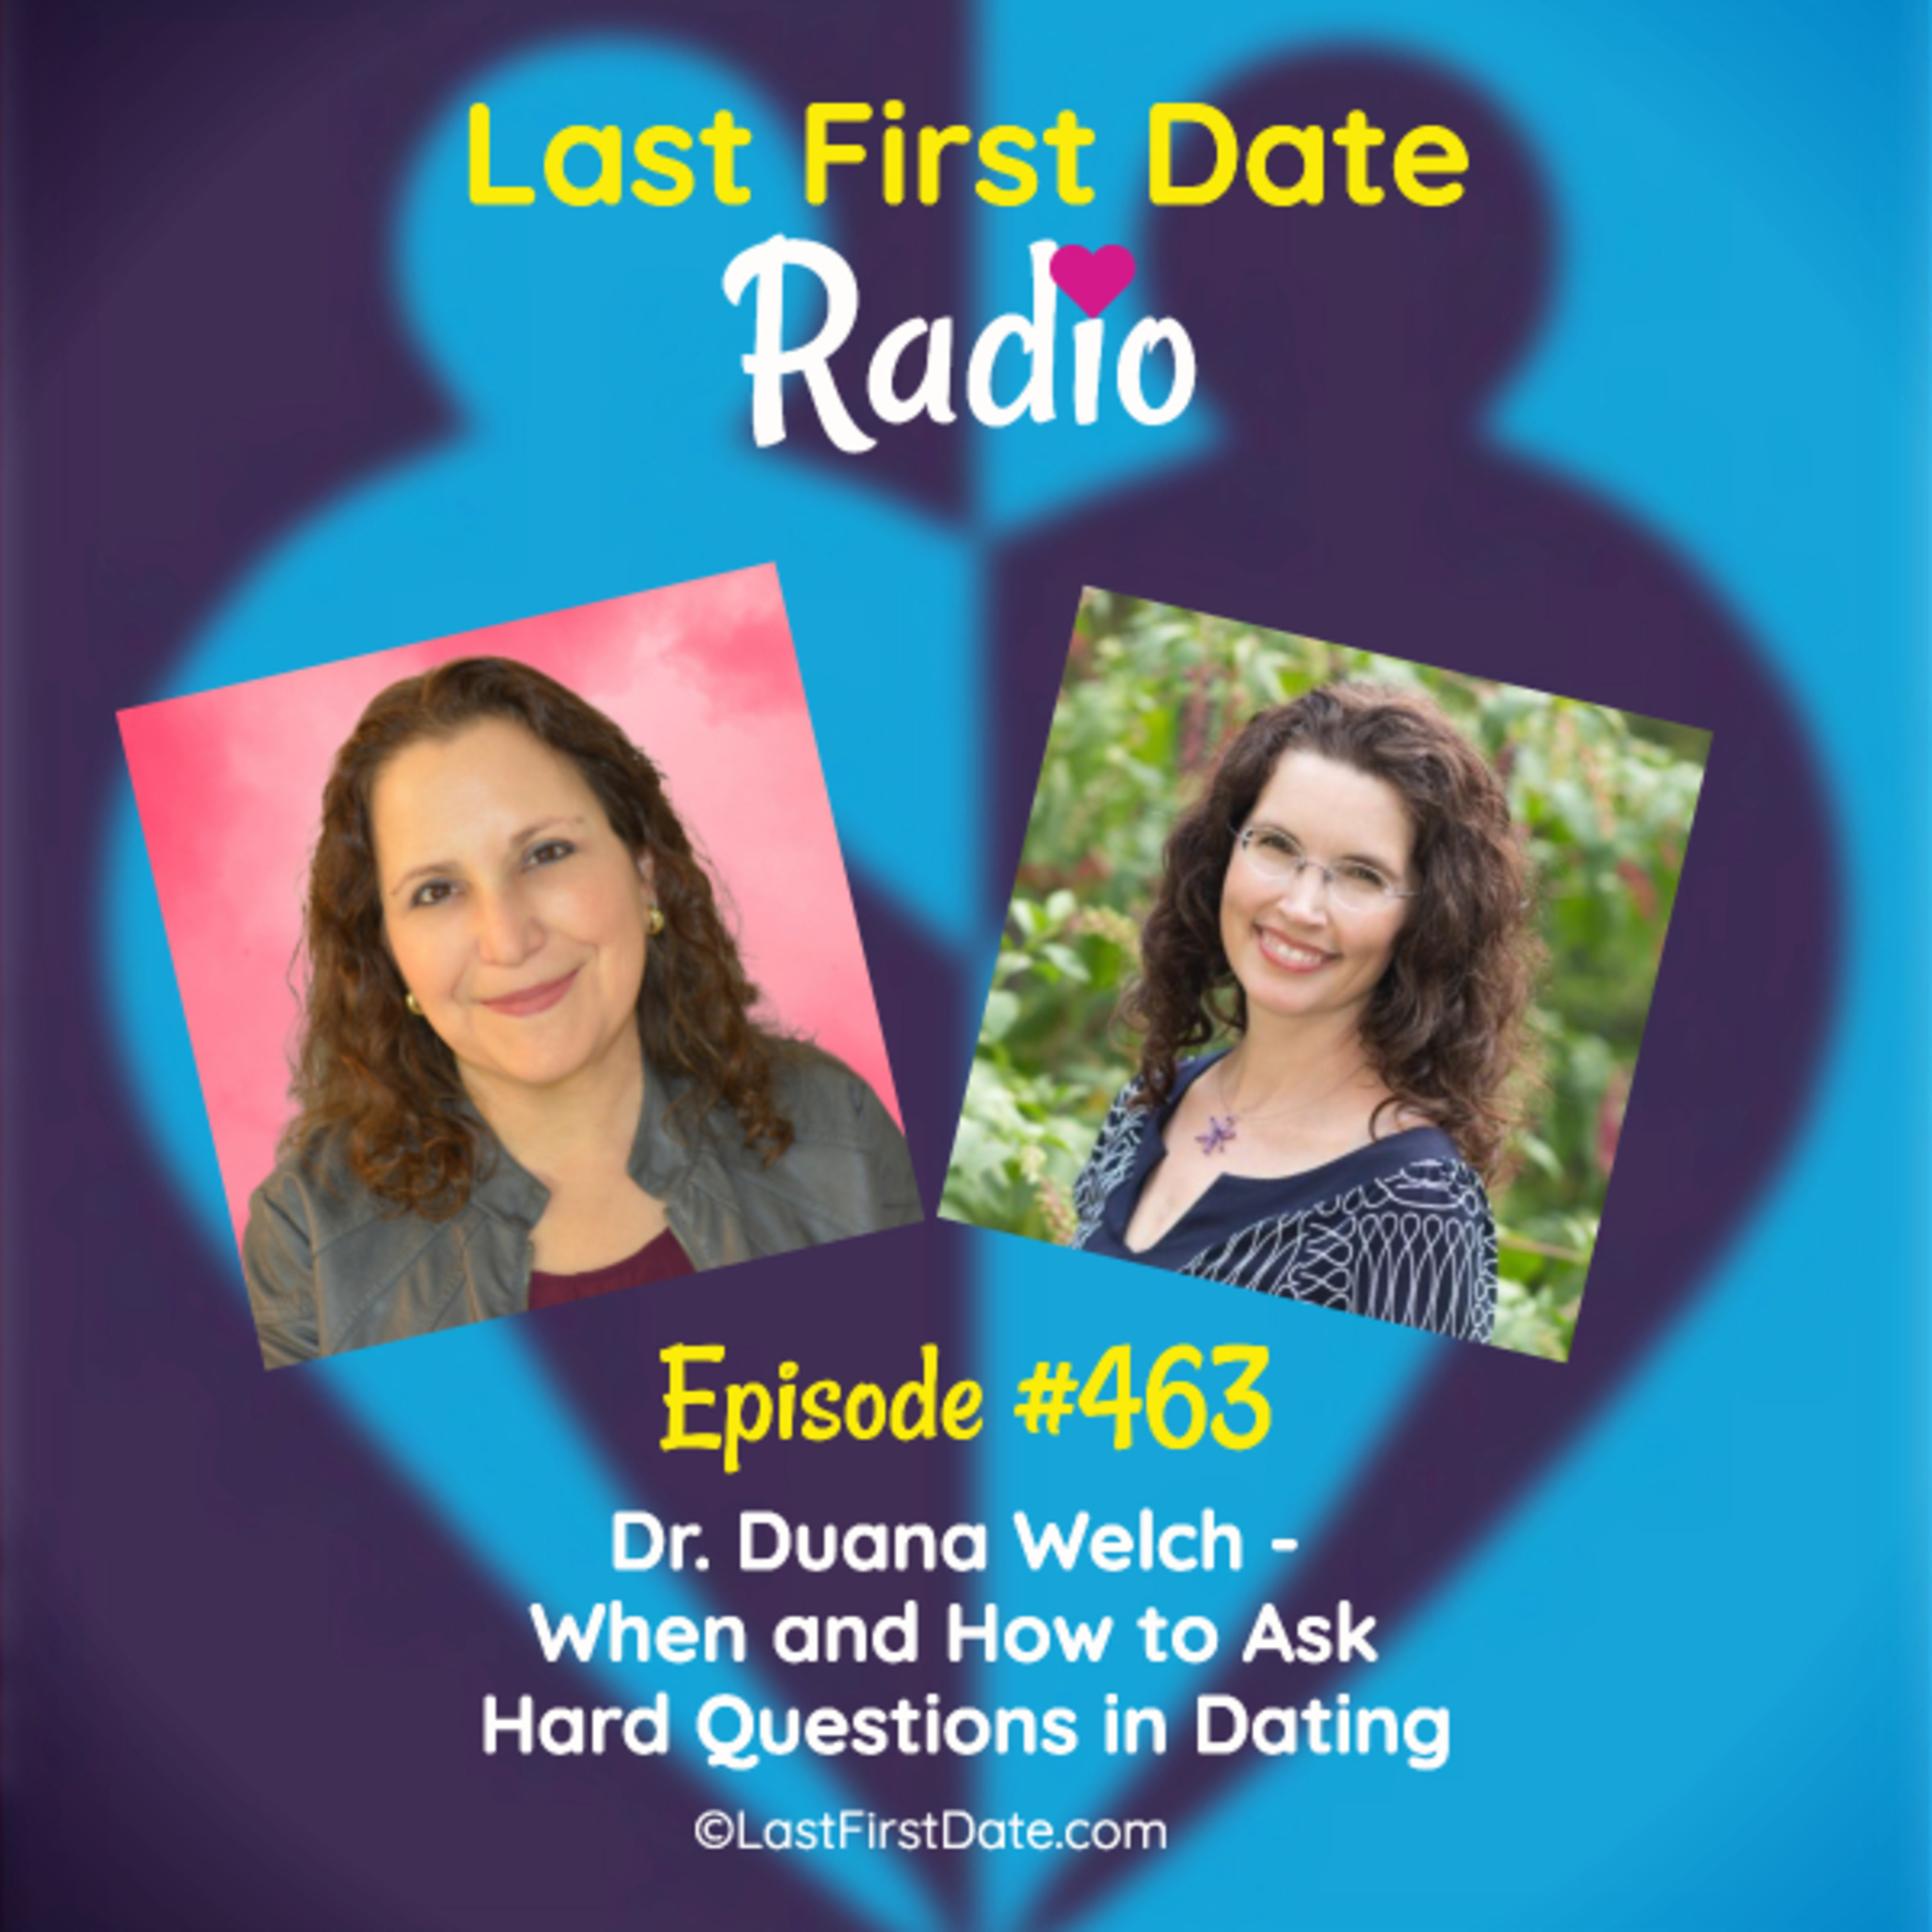 Last First Date Radio - EP 463: Dr. Duana Welch - When and How to Ask Hard Questions in Dating